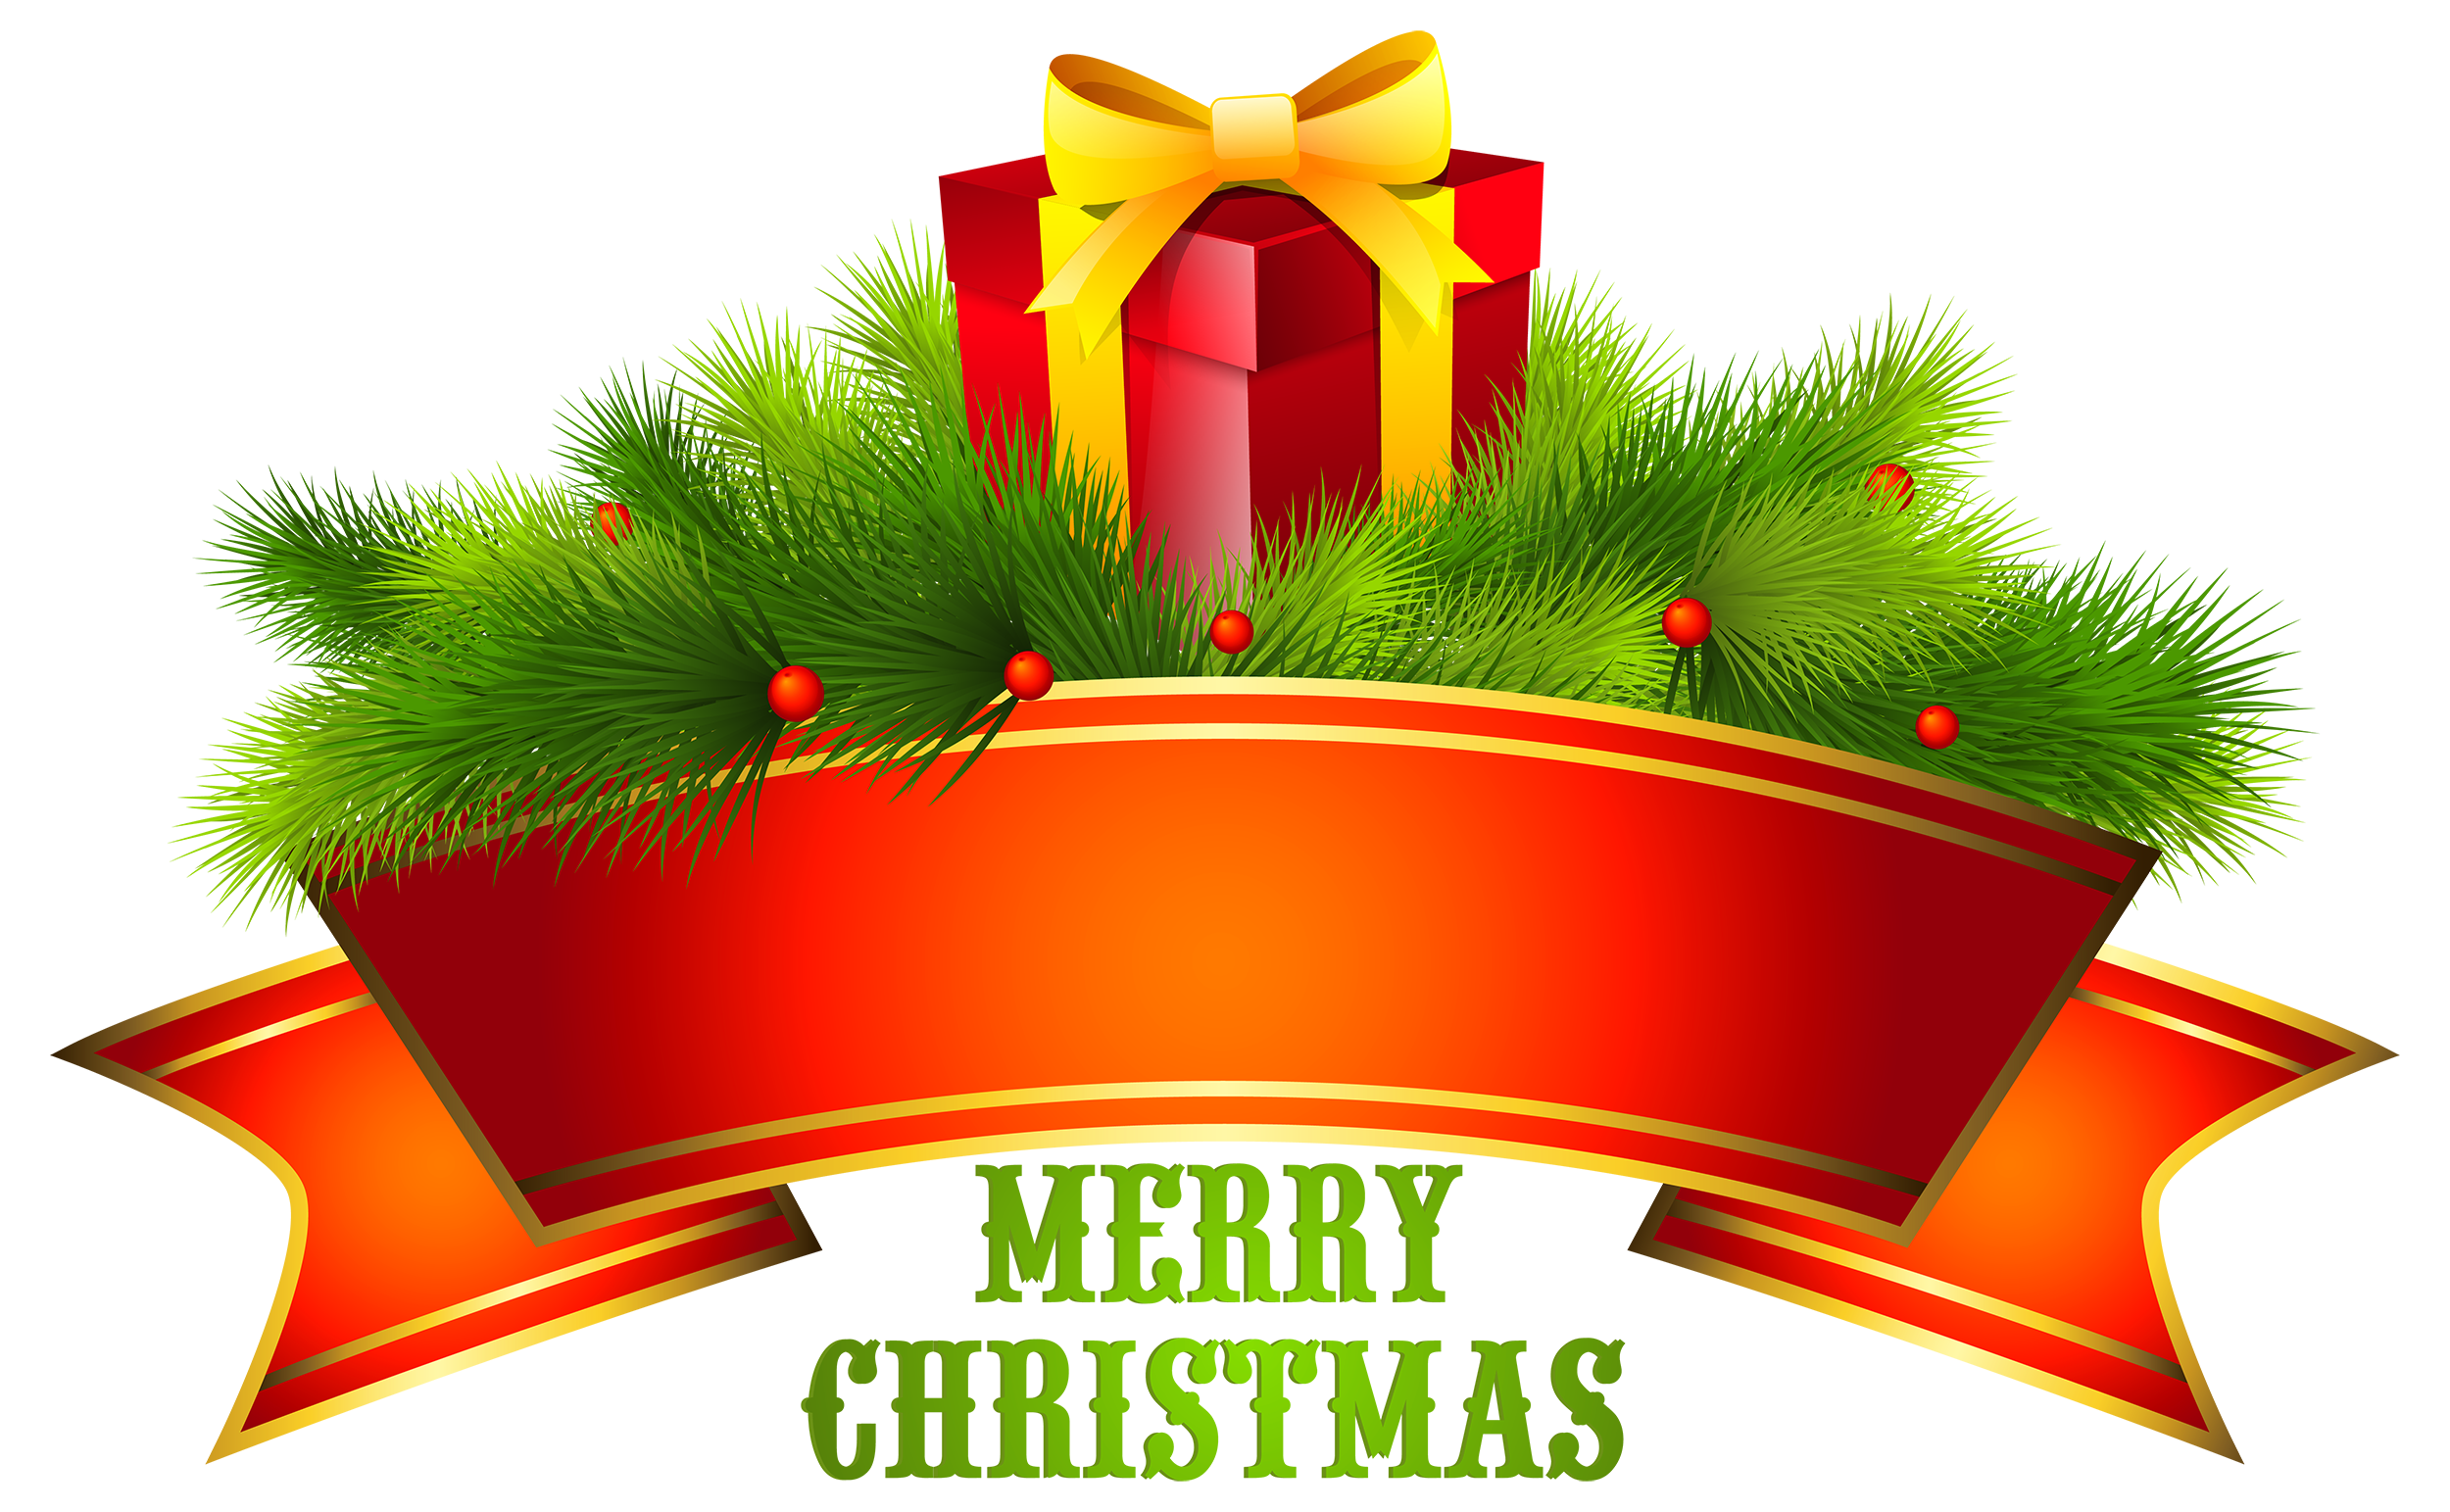 Christmas 2016 png. Merry text decor clipart